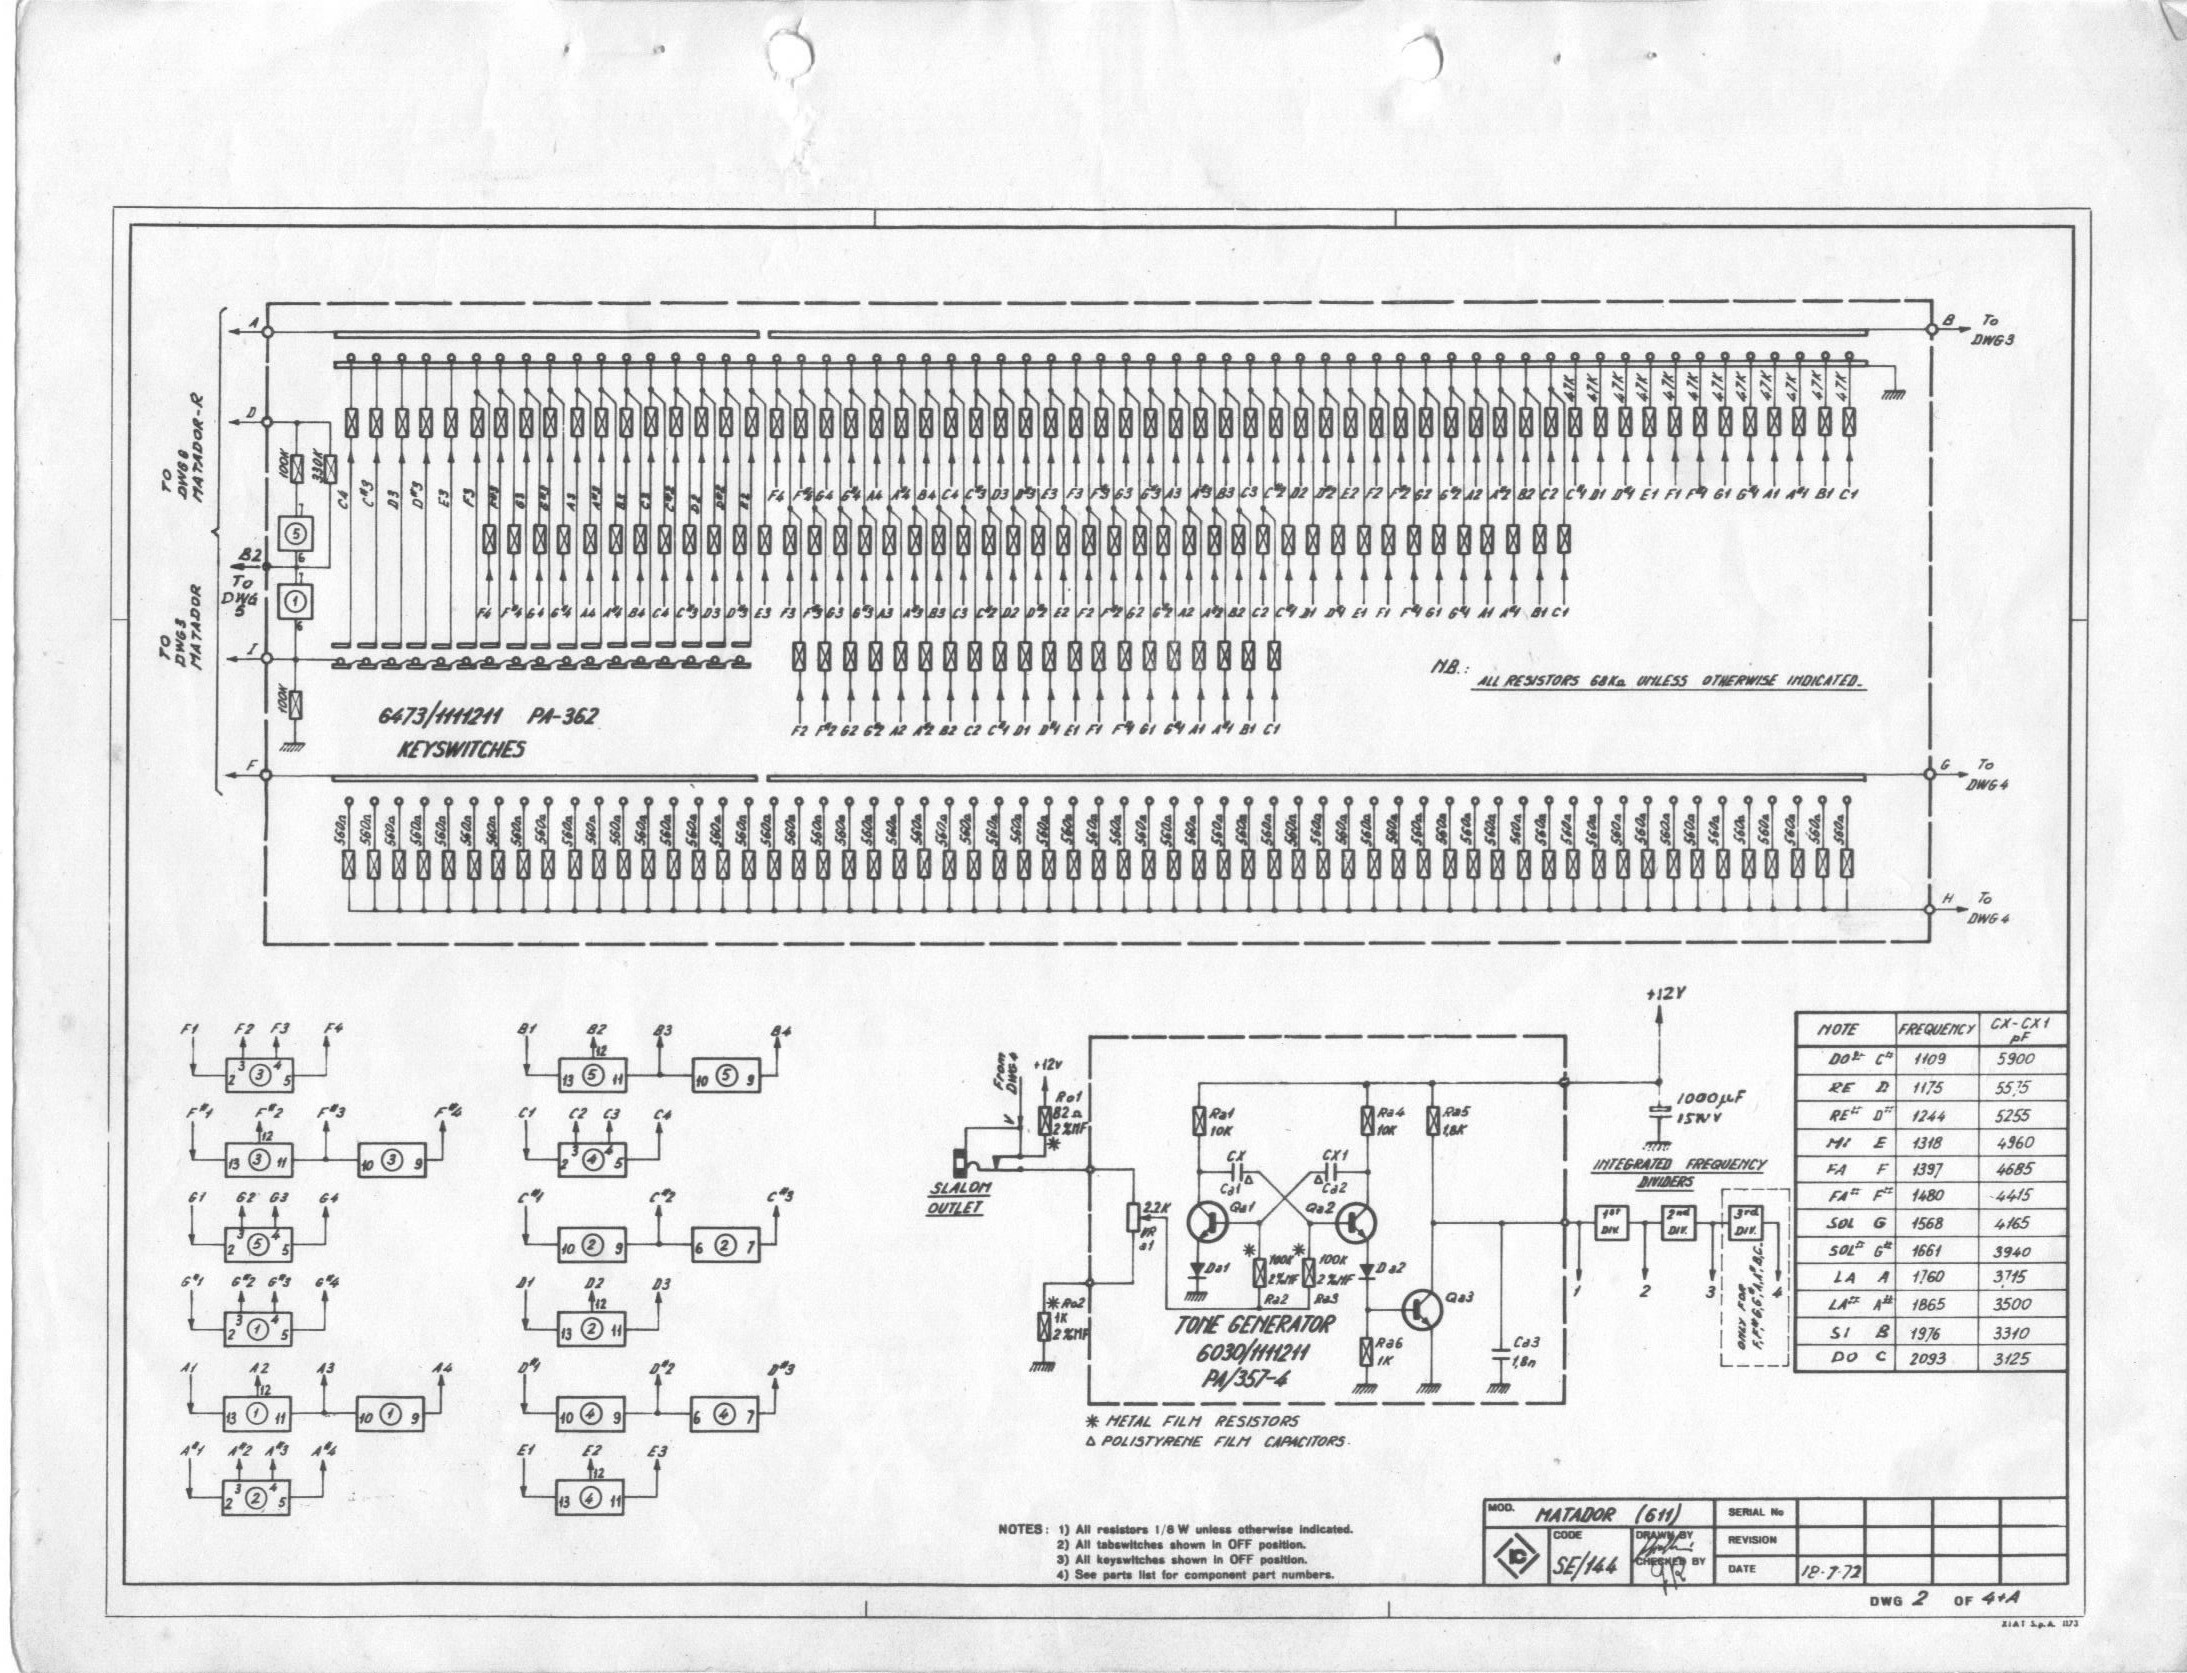 Schematics Archives Electronic Block Diagram If You Need To Save Them Or Look At A Larger Version Of The Page Just Right Click Image And Target As Matador Schematic